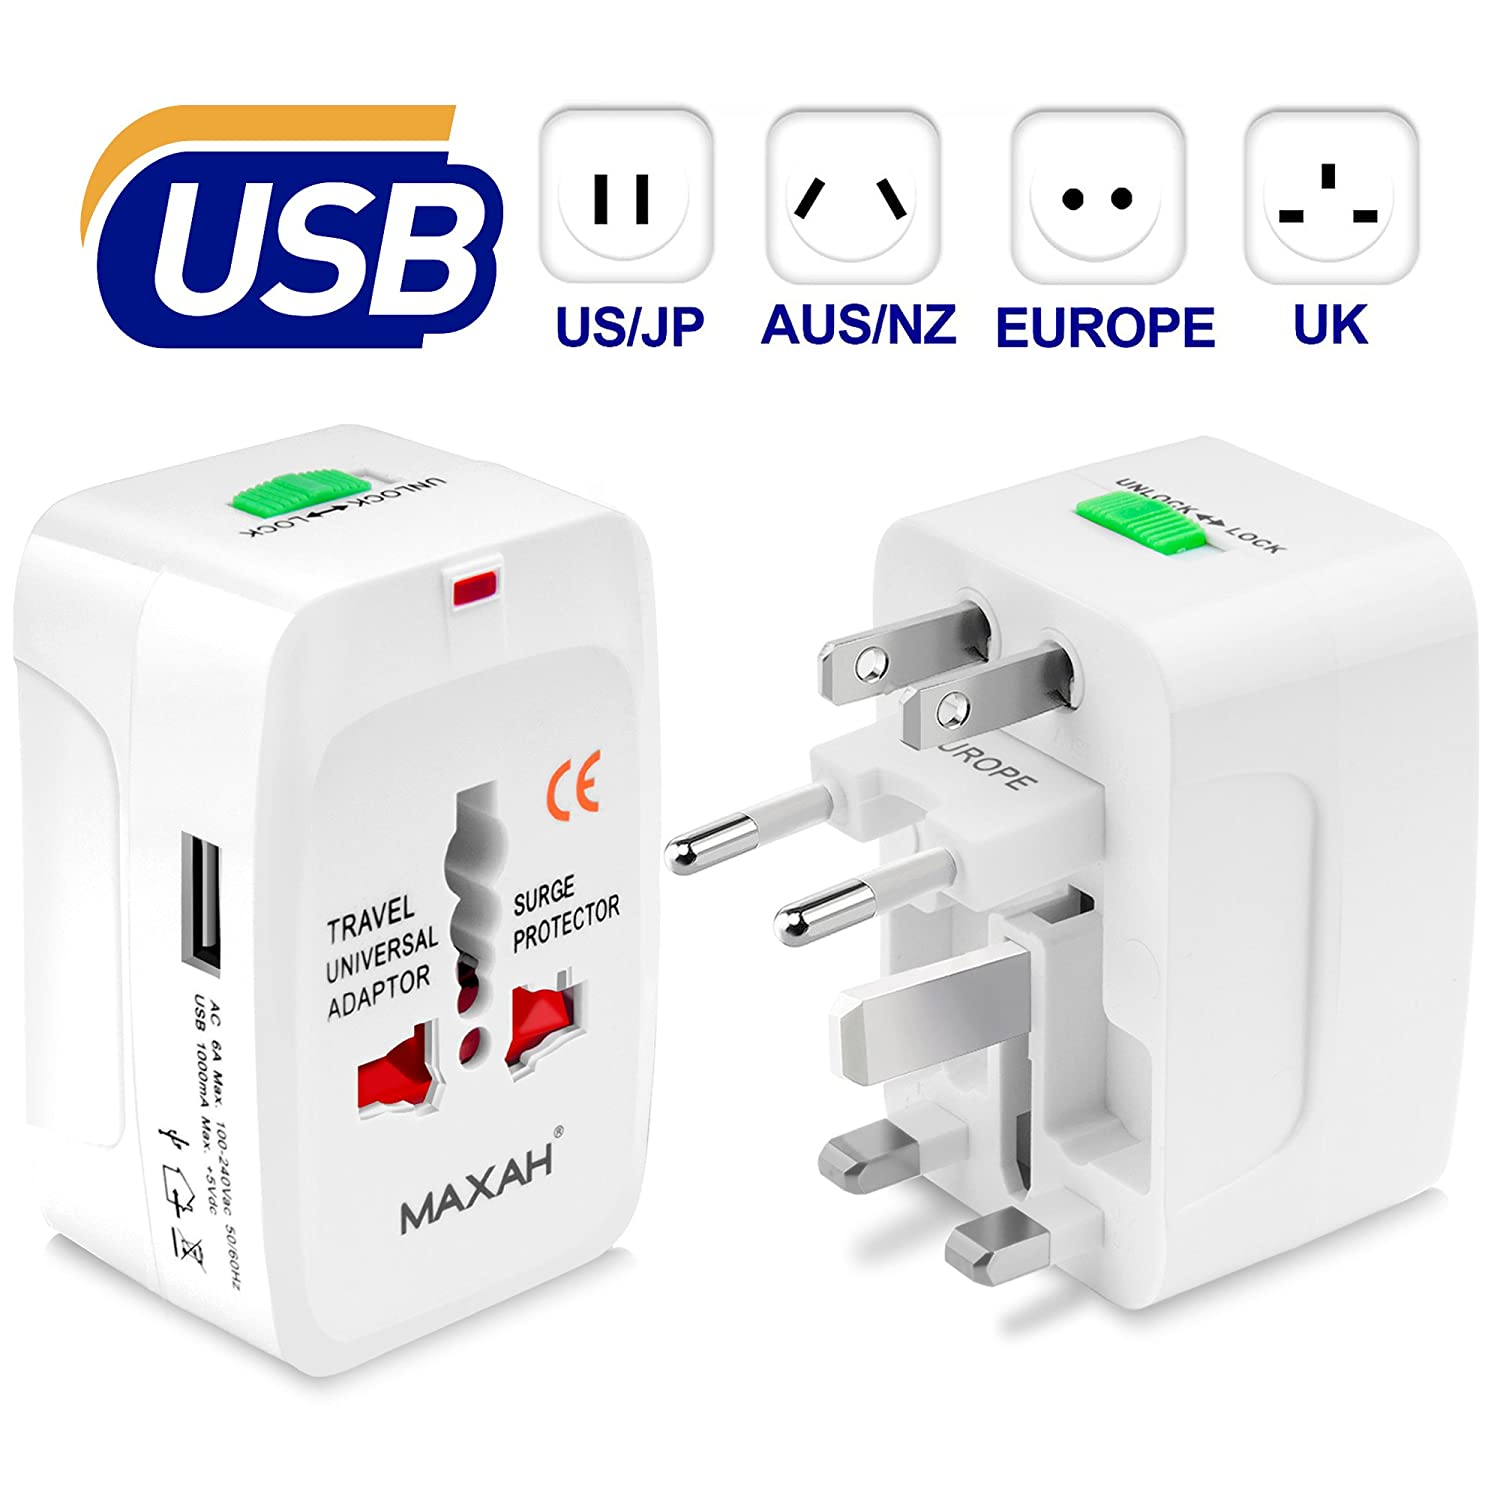 Adaptateur universel prise usb pour un meilleur voyage MAXAH Adaptateur universel de voyage avec 2 ports USB Tout en un adaptateur international adaptateur prise double usb All in One Universal World Wide Travel Adapter pour plus de 150 pays ou région comm